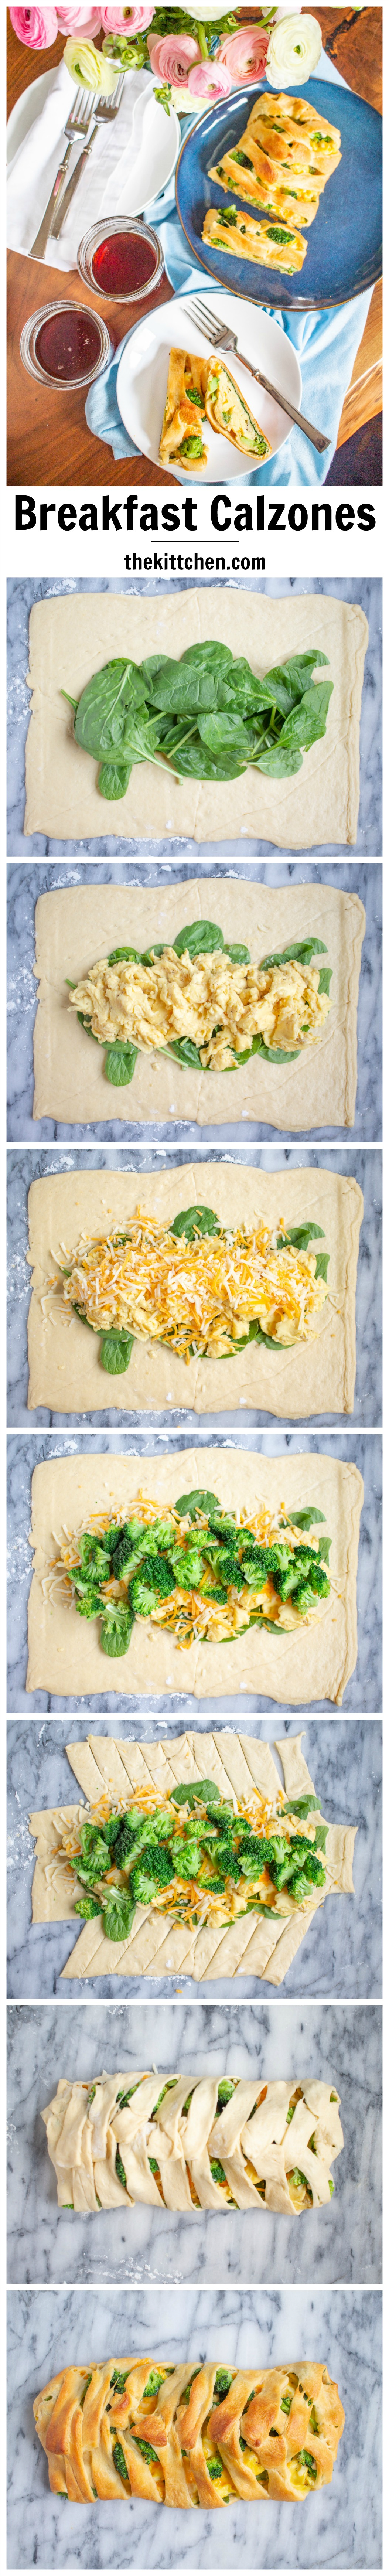 Breakfast Calzone stuffed with spinach, broccoli, scrambled eggs, and cheddar cheese. And easy 30 minute recipe with just 10 minutes of active preparation time.